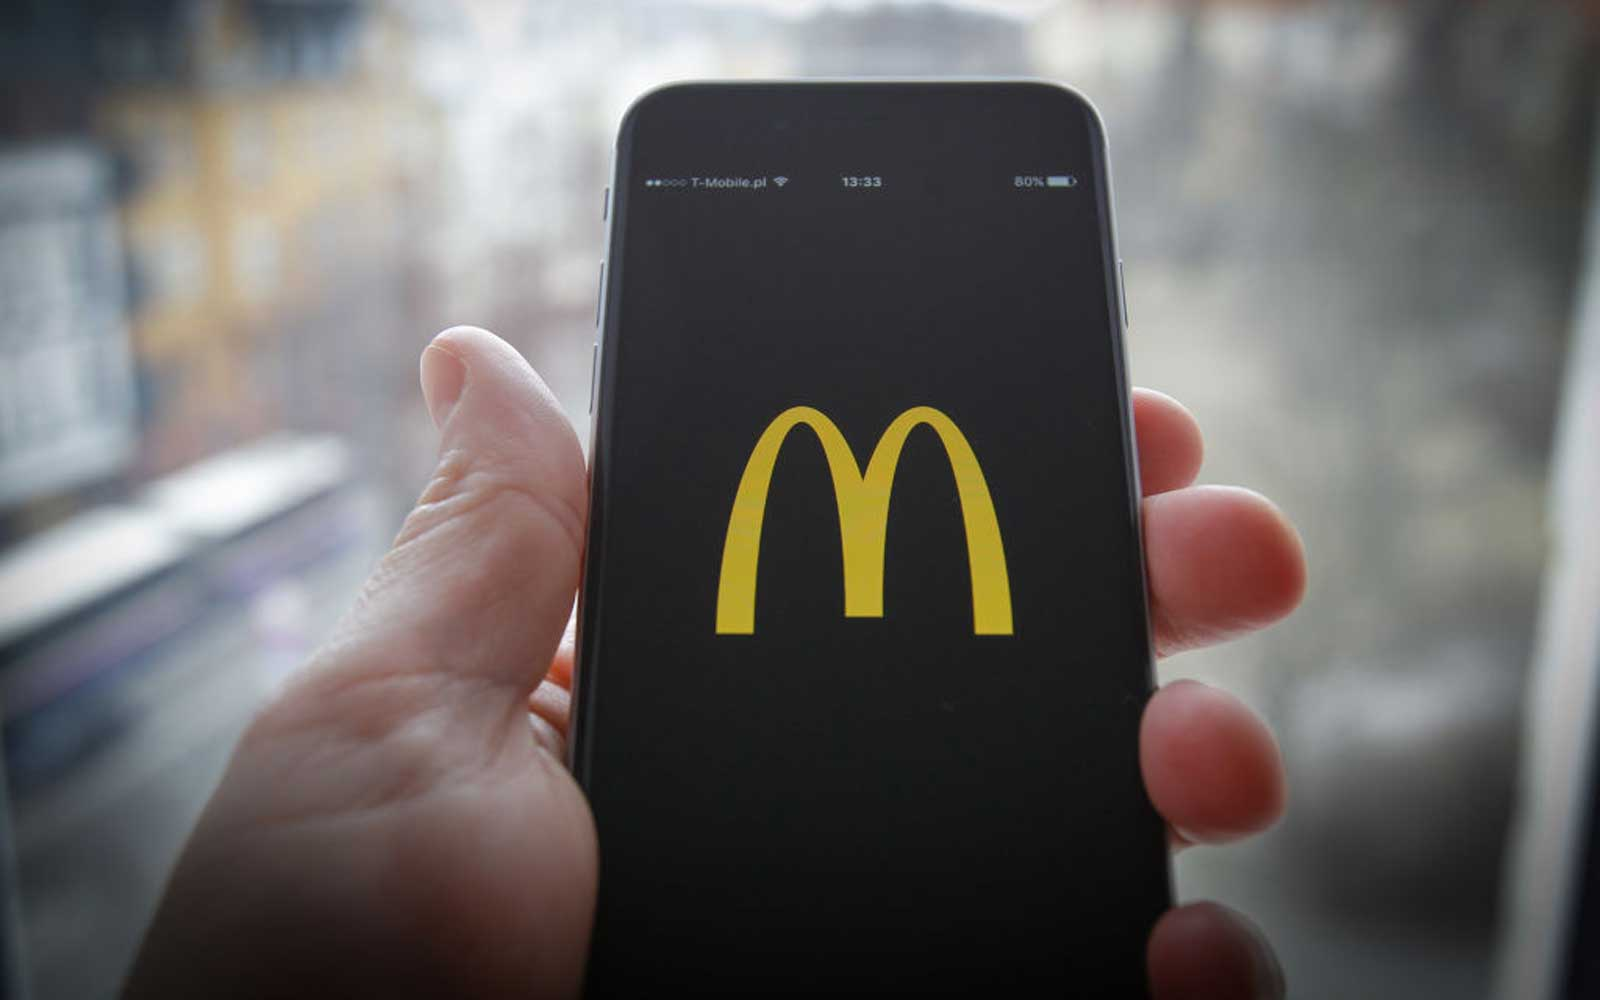 McDonalds app on an iPhone.